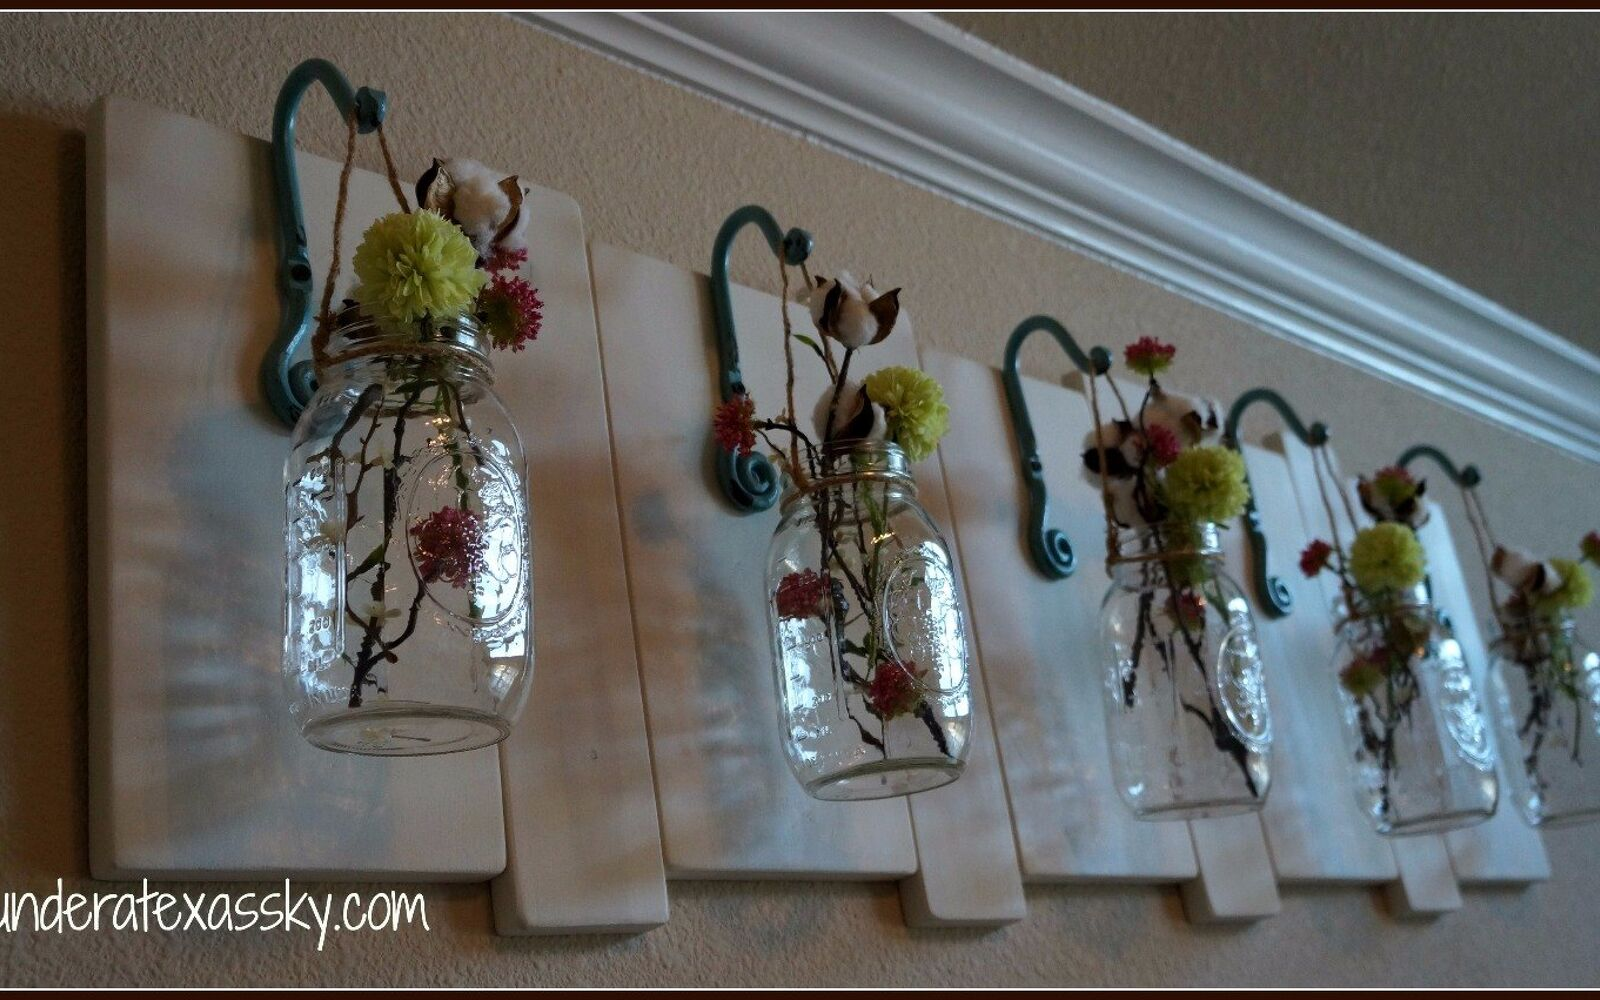 s 30 great mason jar ideas you have to try, Fill Freshly Clipped Flowers In A Hanging Jar